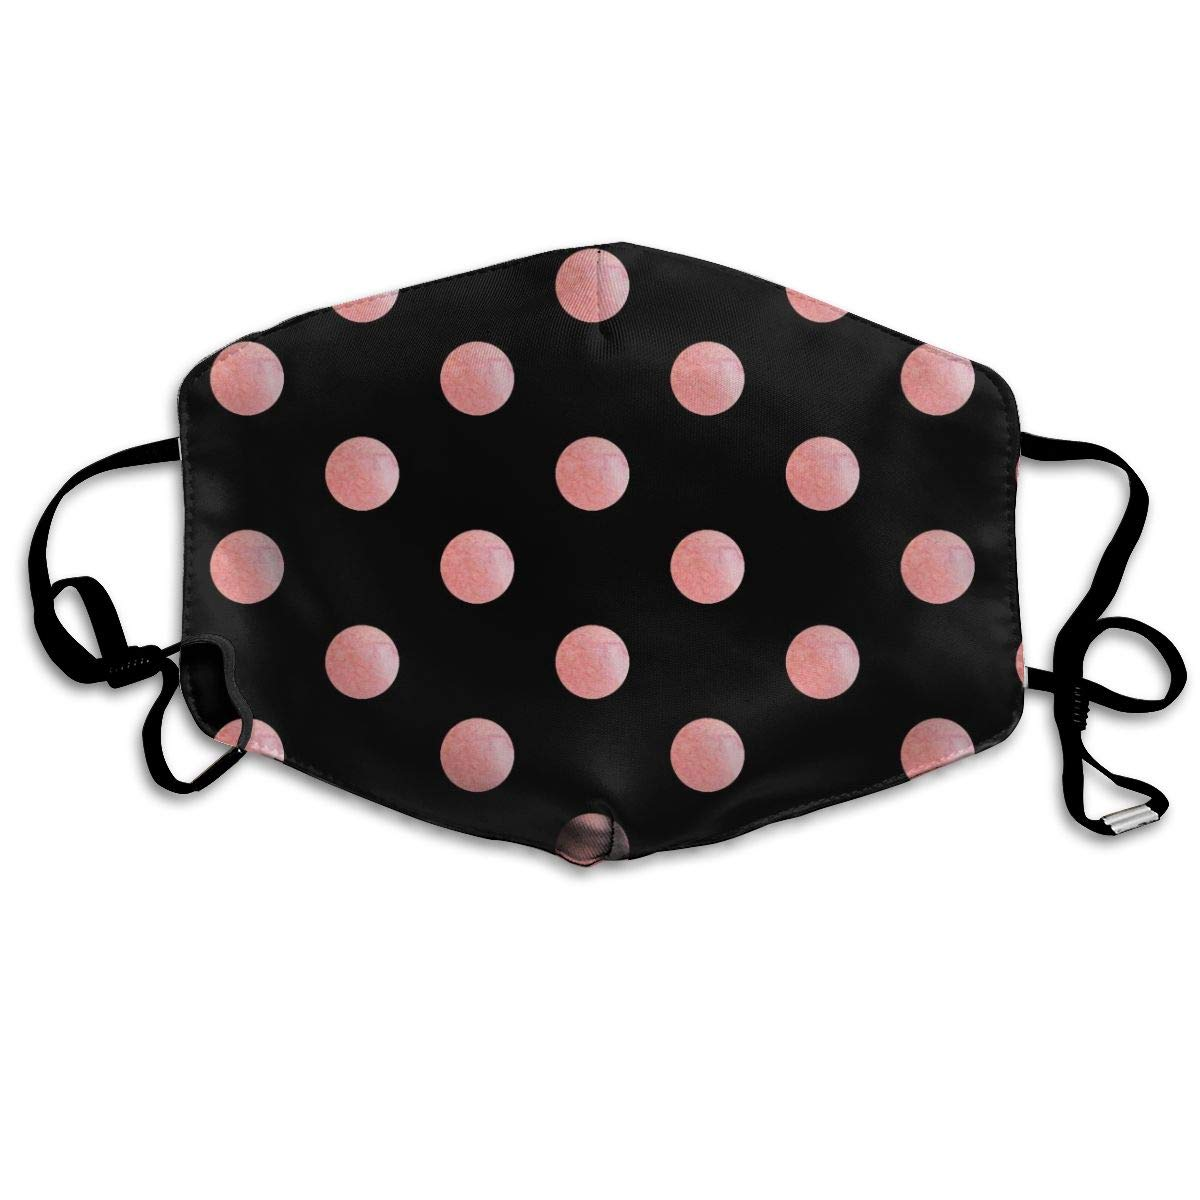 Unisex Anti-dust Face Mask Pink Black Polka Dot Mouth Mask Reusable